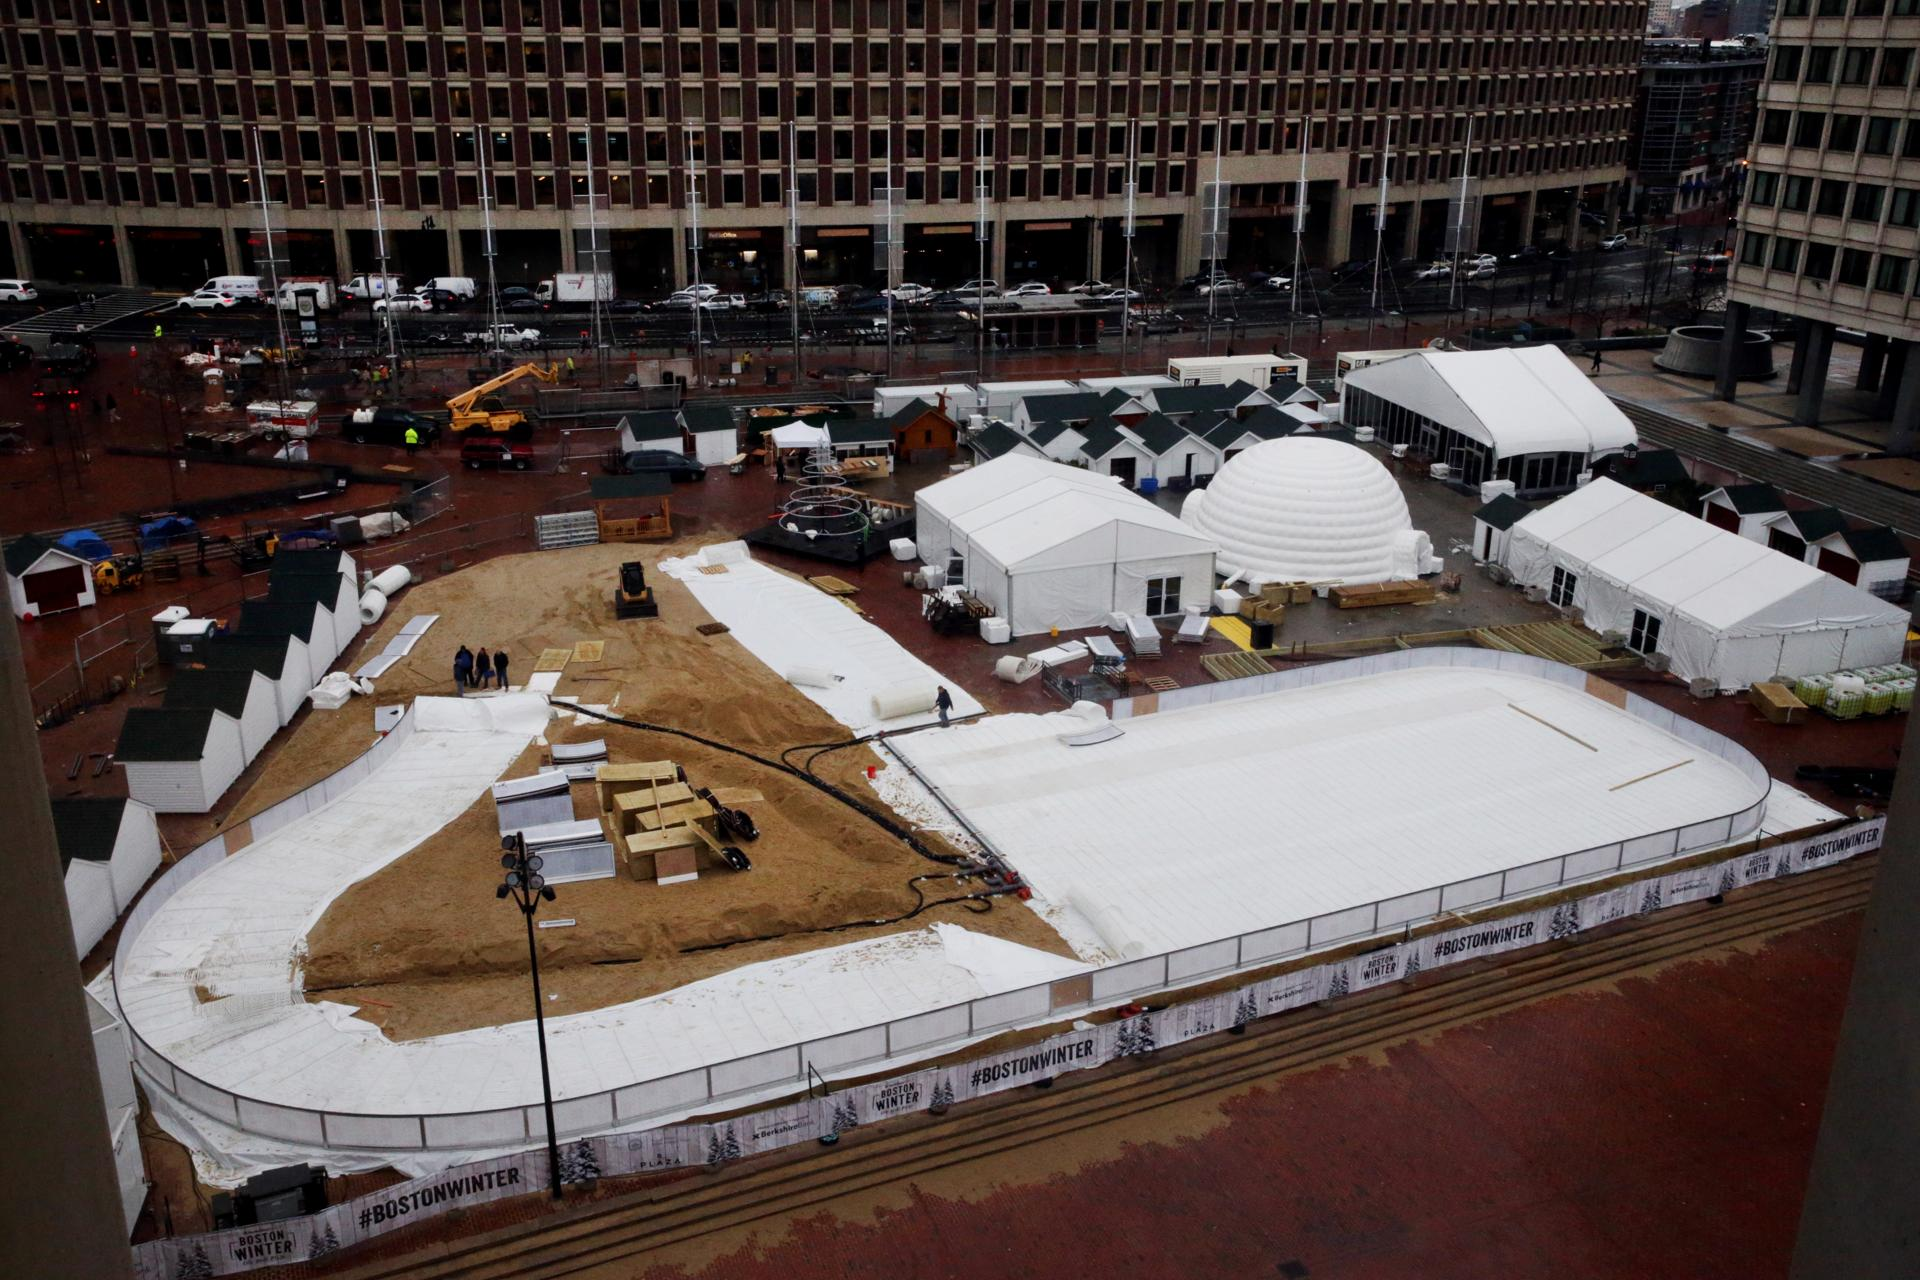 "City Hall Plaza will soon be a winter wonderland, with a giant ice skating loop, ""chalets"" selling ornaments, chocolate fountains, and copious holiday decorations."